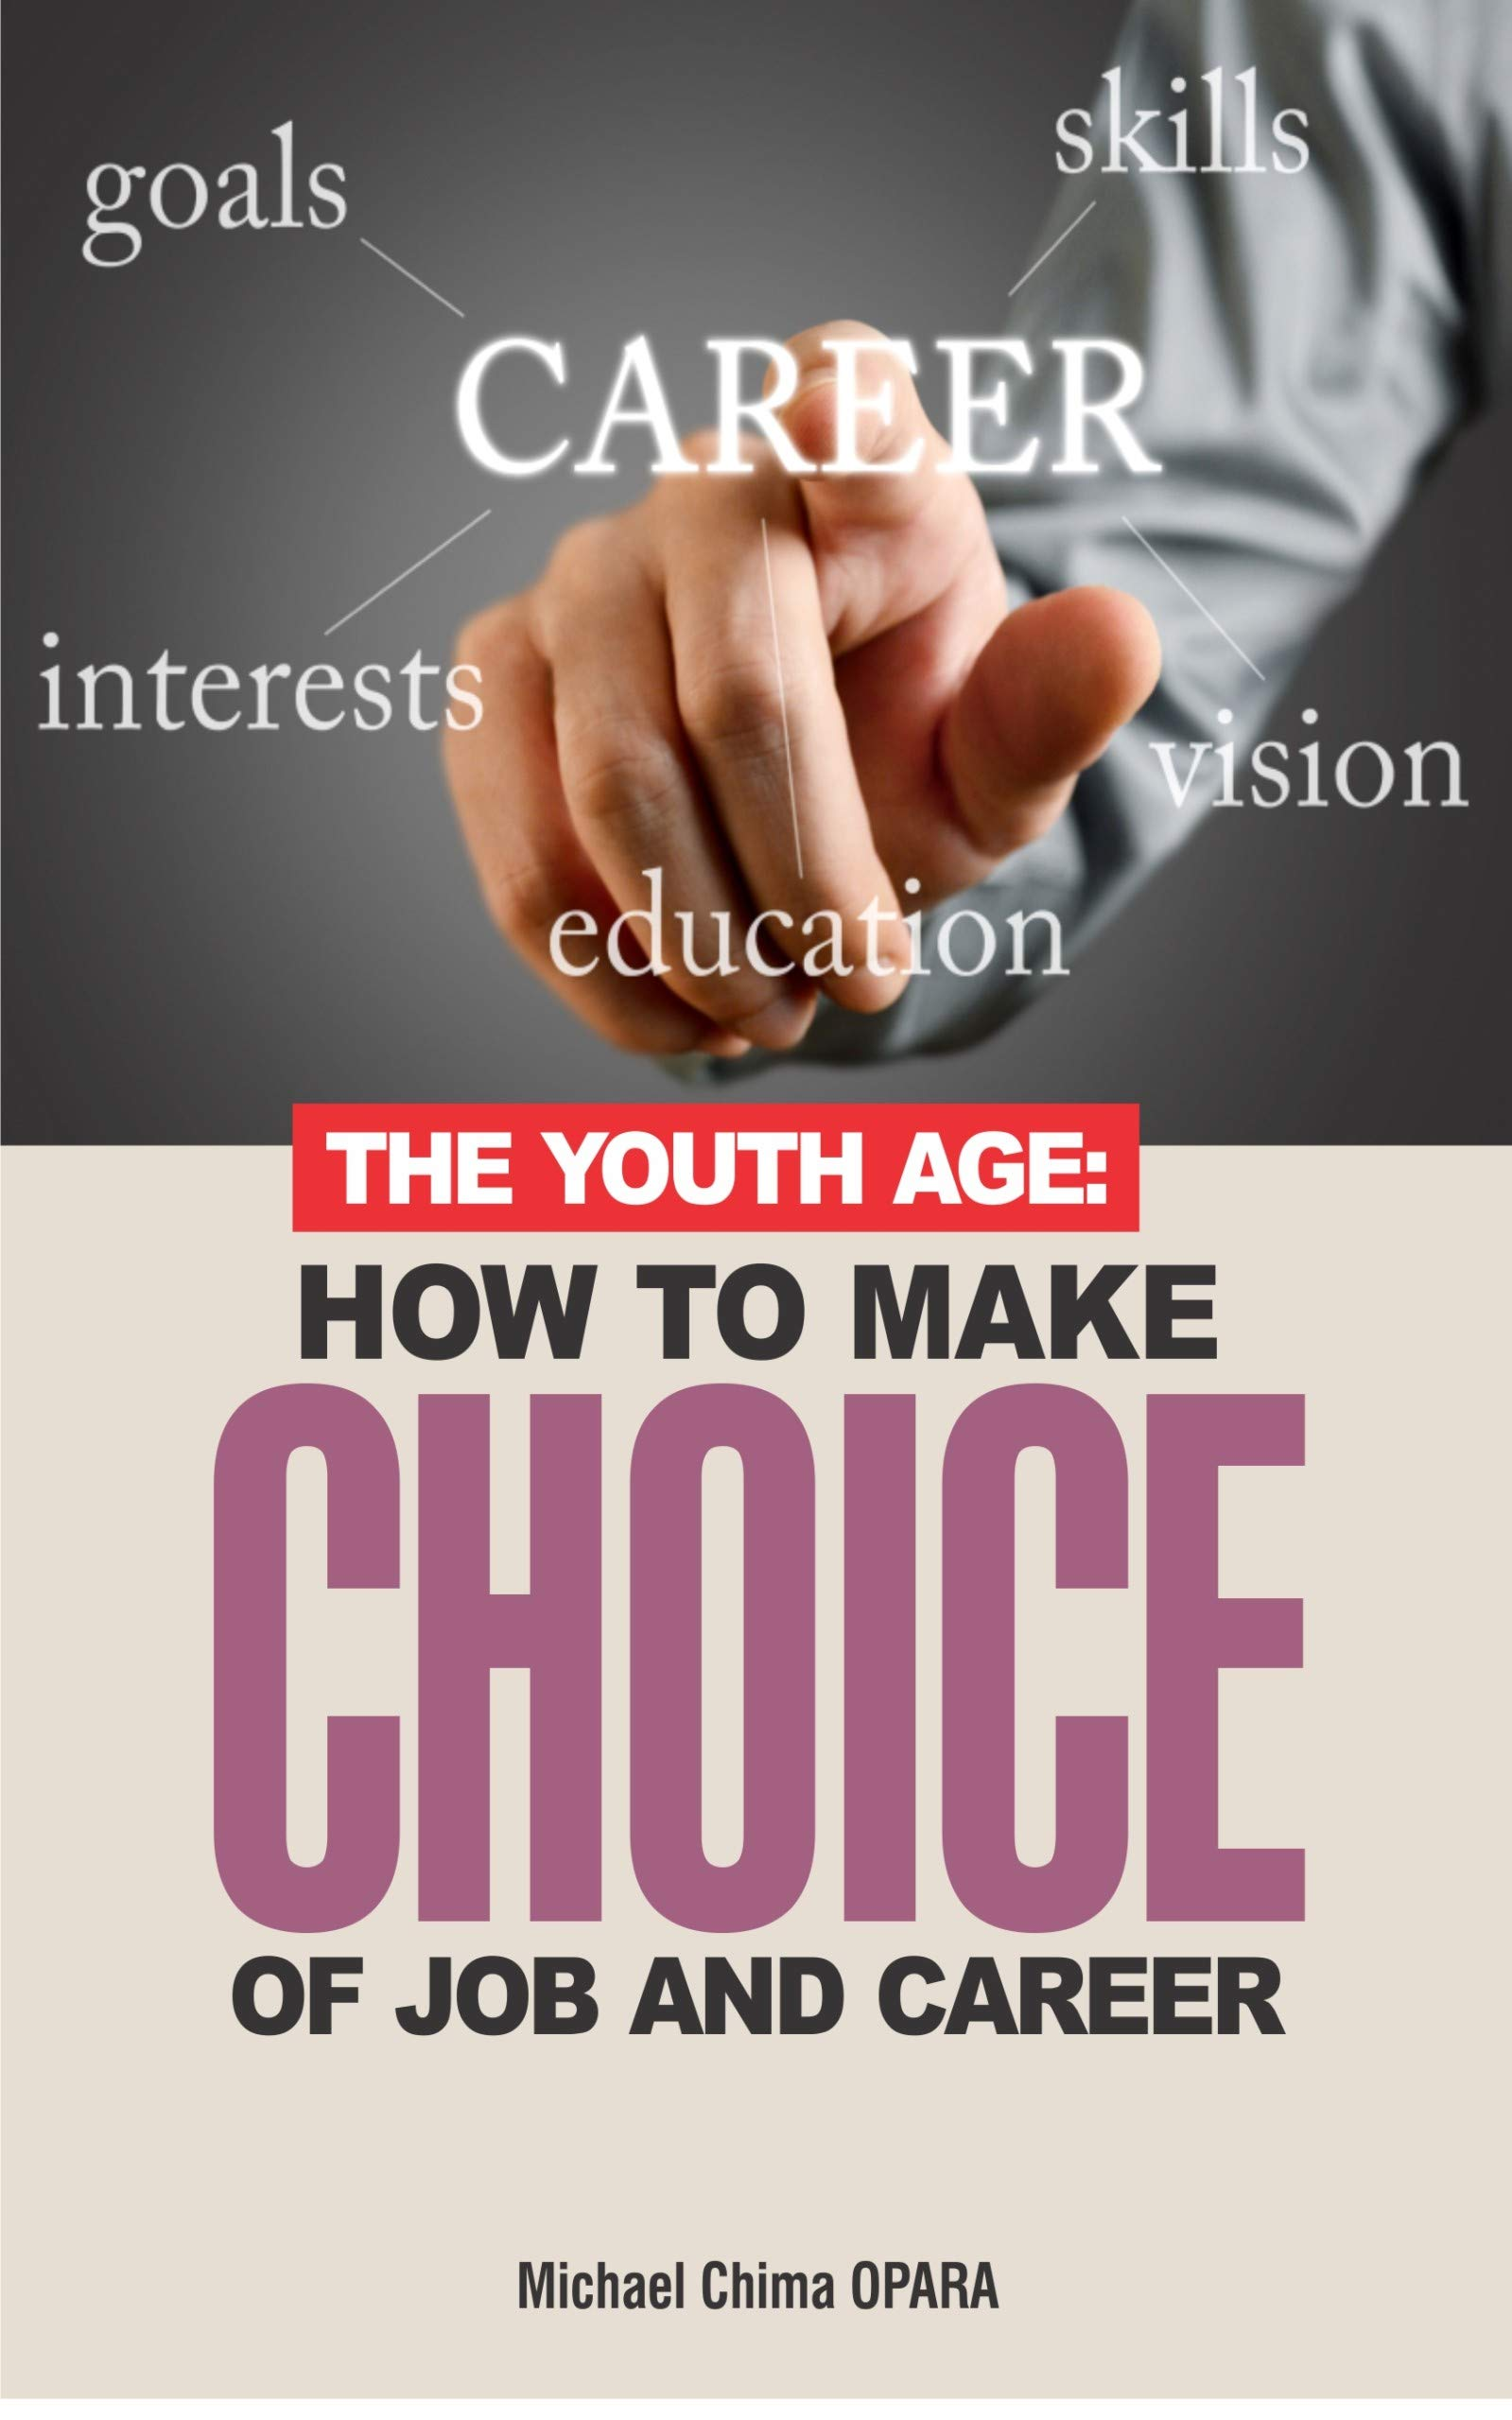 The Youth Age: How to Make Choice of Job & Career